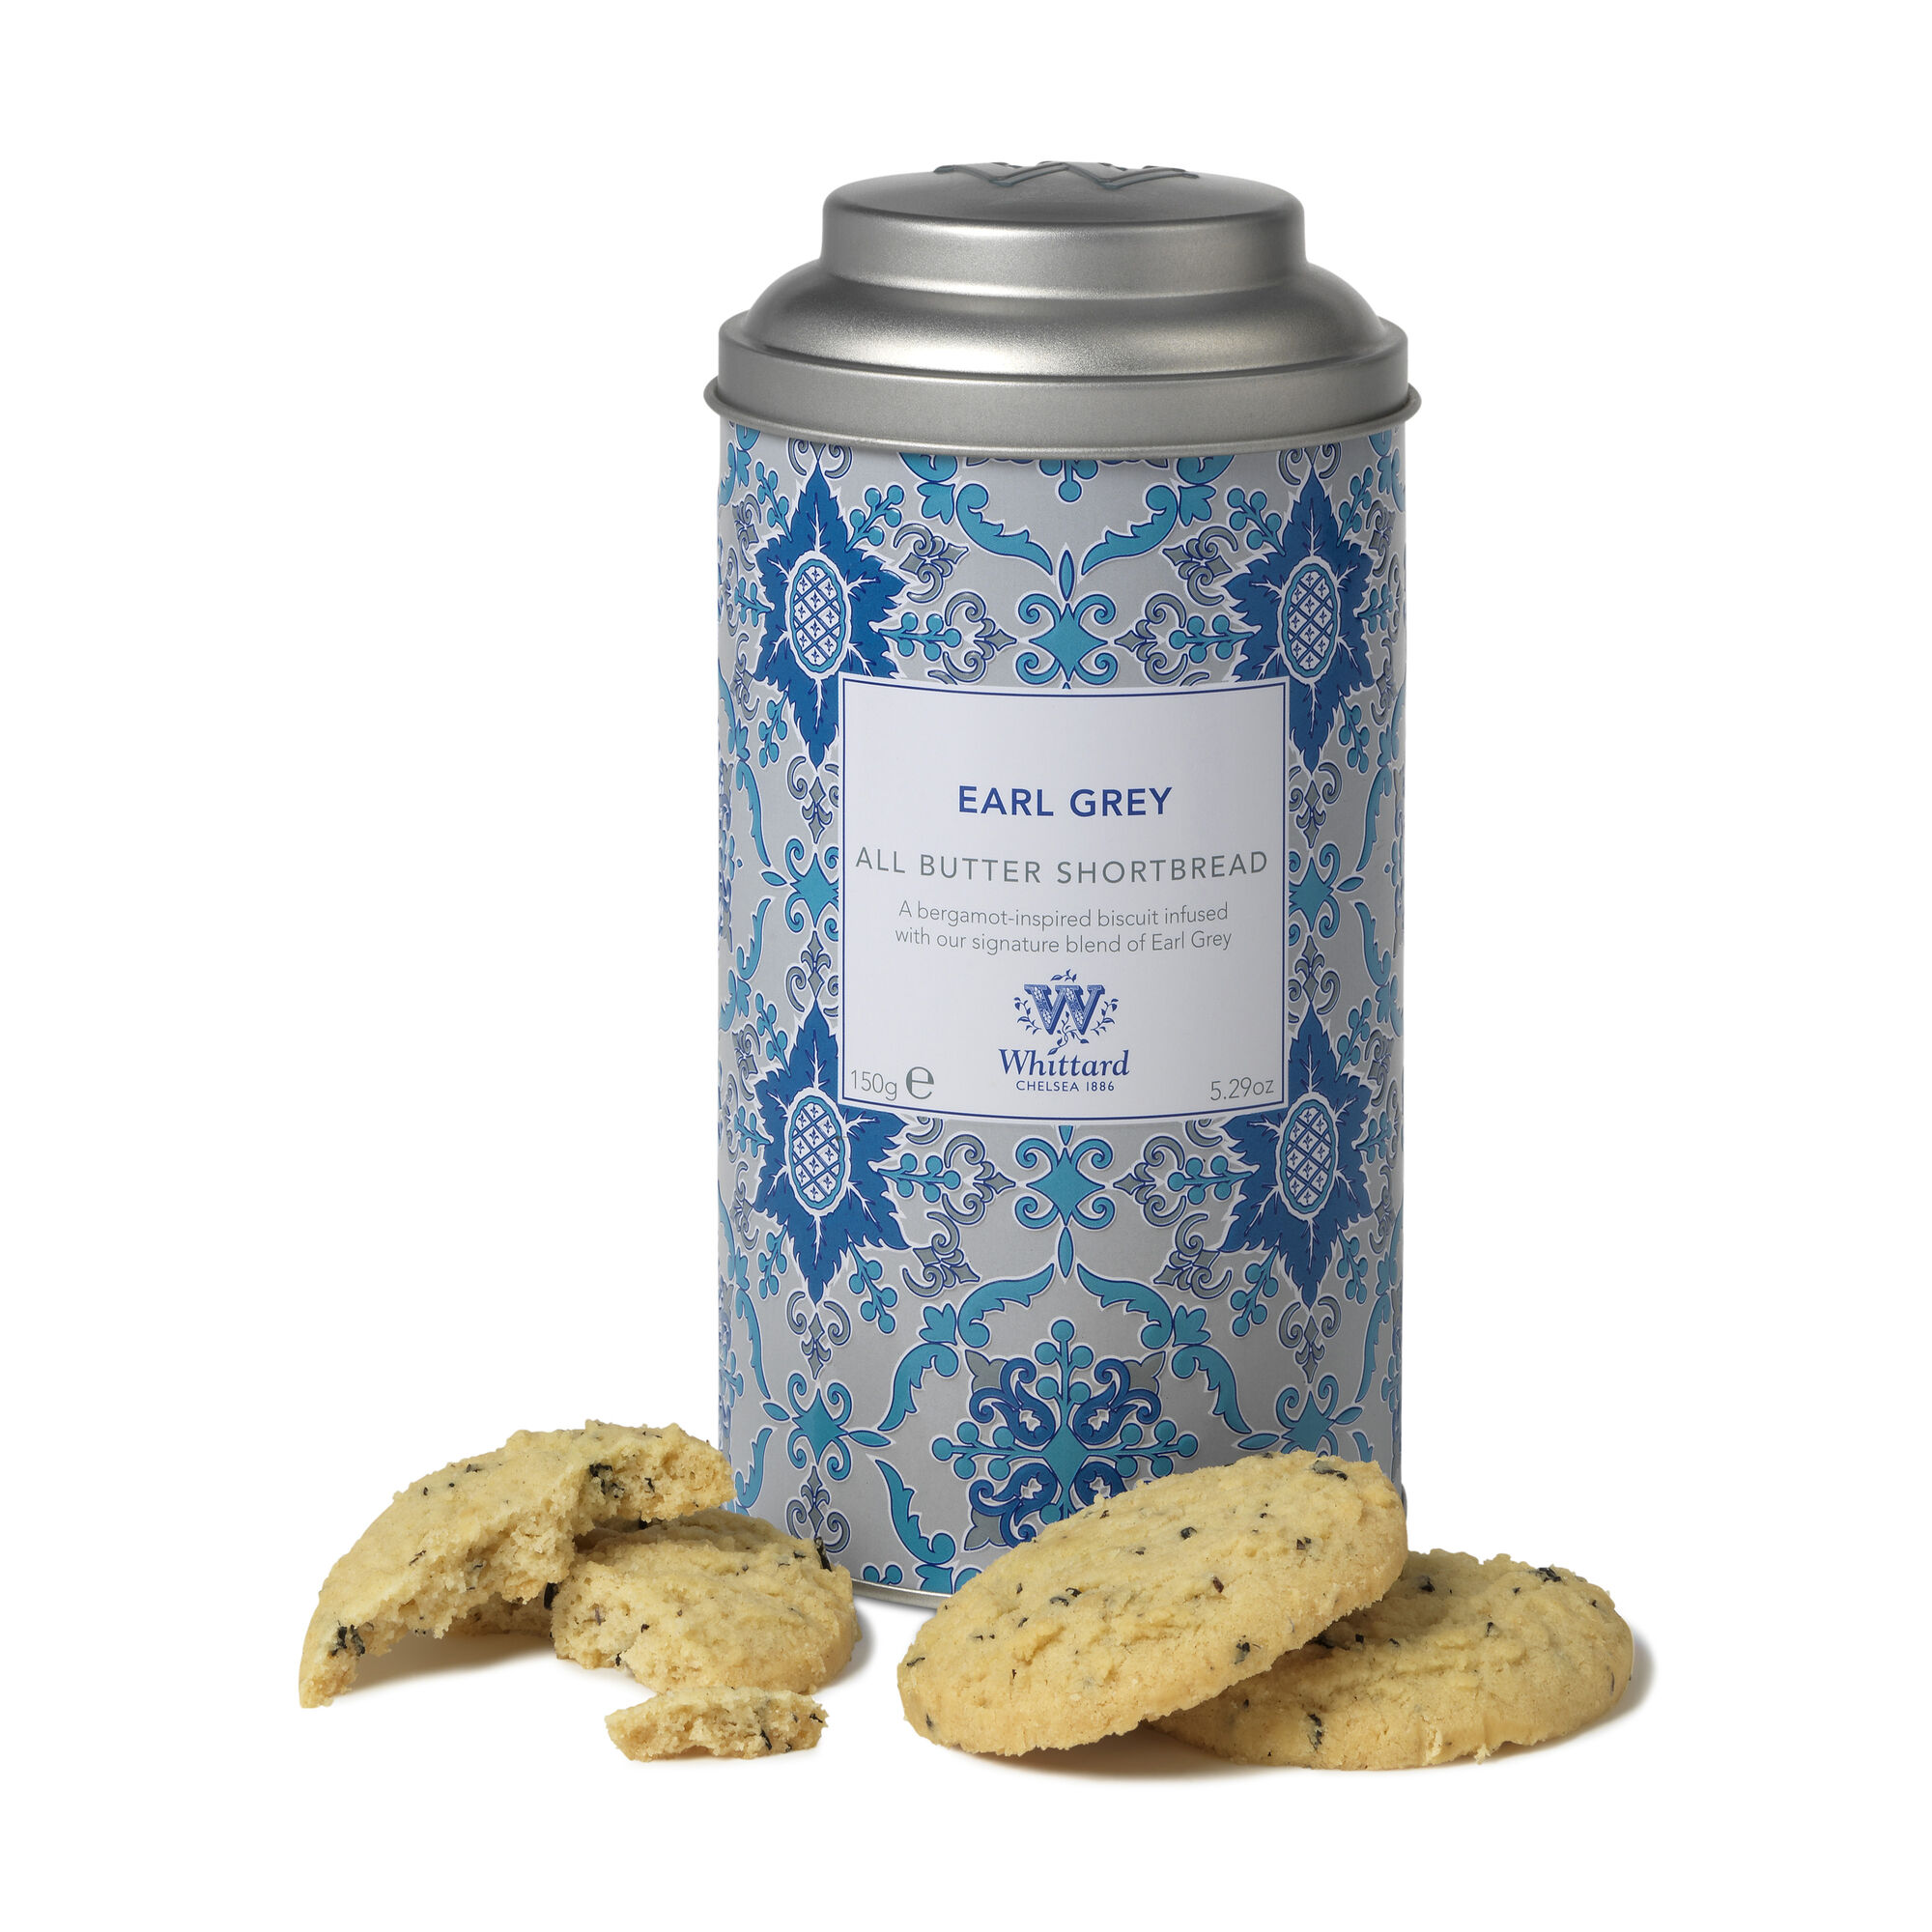 Mes boîtes et ma vaisselle......so british....  - Page 2 318600-TEA_DISCOVERIES_EARL_GREY_ALL_BUTTER_SHORTBREAD-1